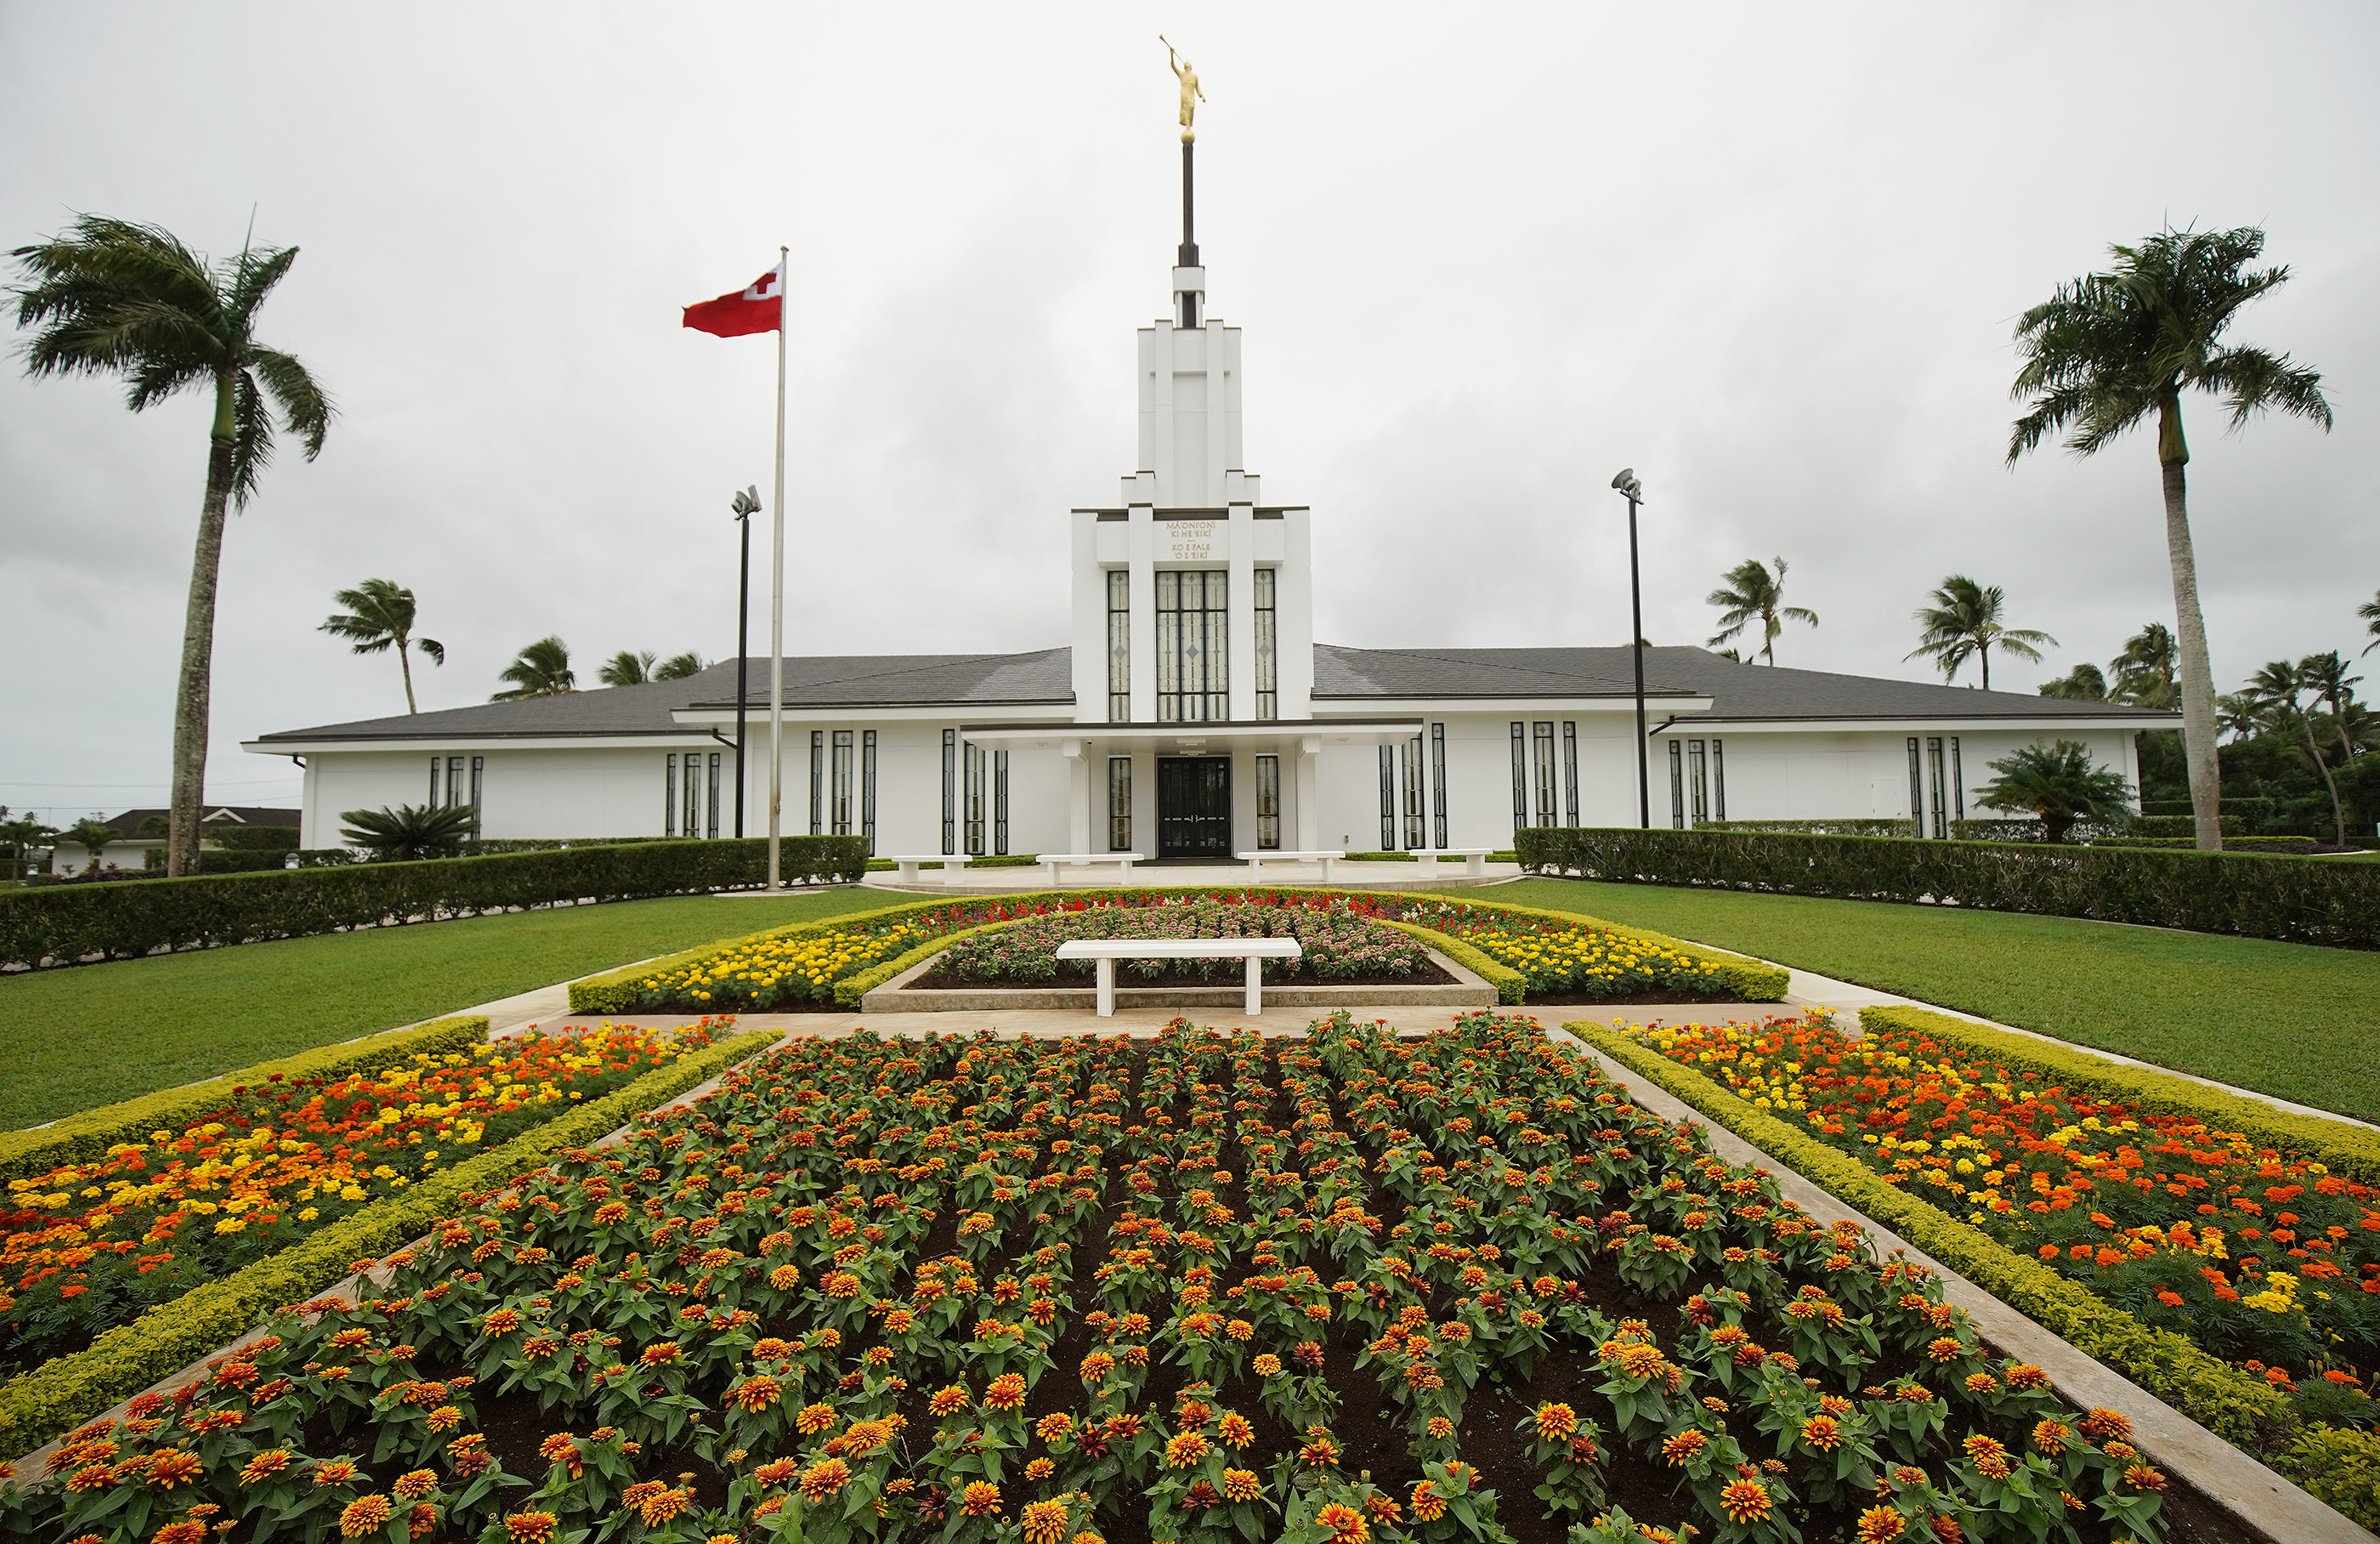 The Nuku'alofa Tonga Temple in Tonga on May 23, 2019.